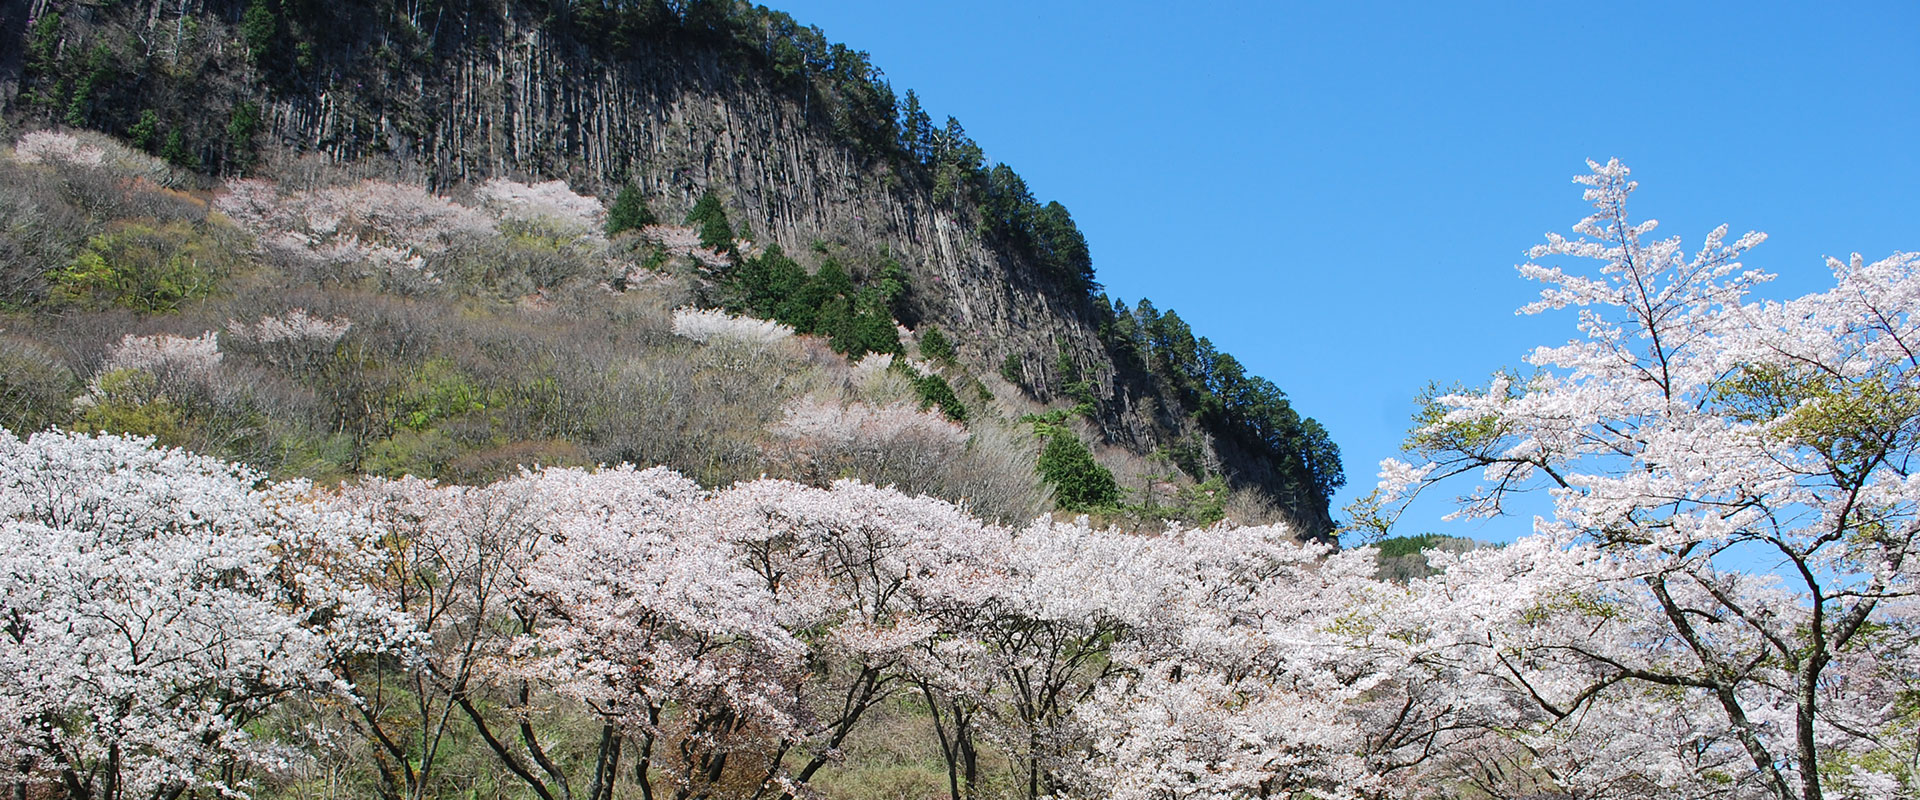 Mountain cherry blossoms at the base of a sheer rock wall